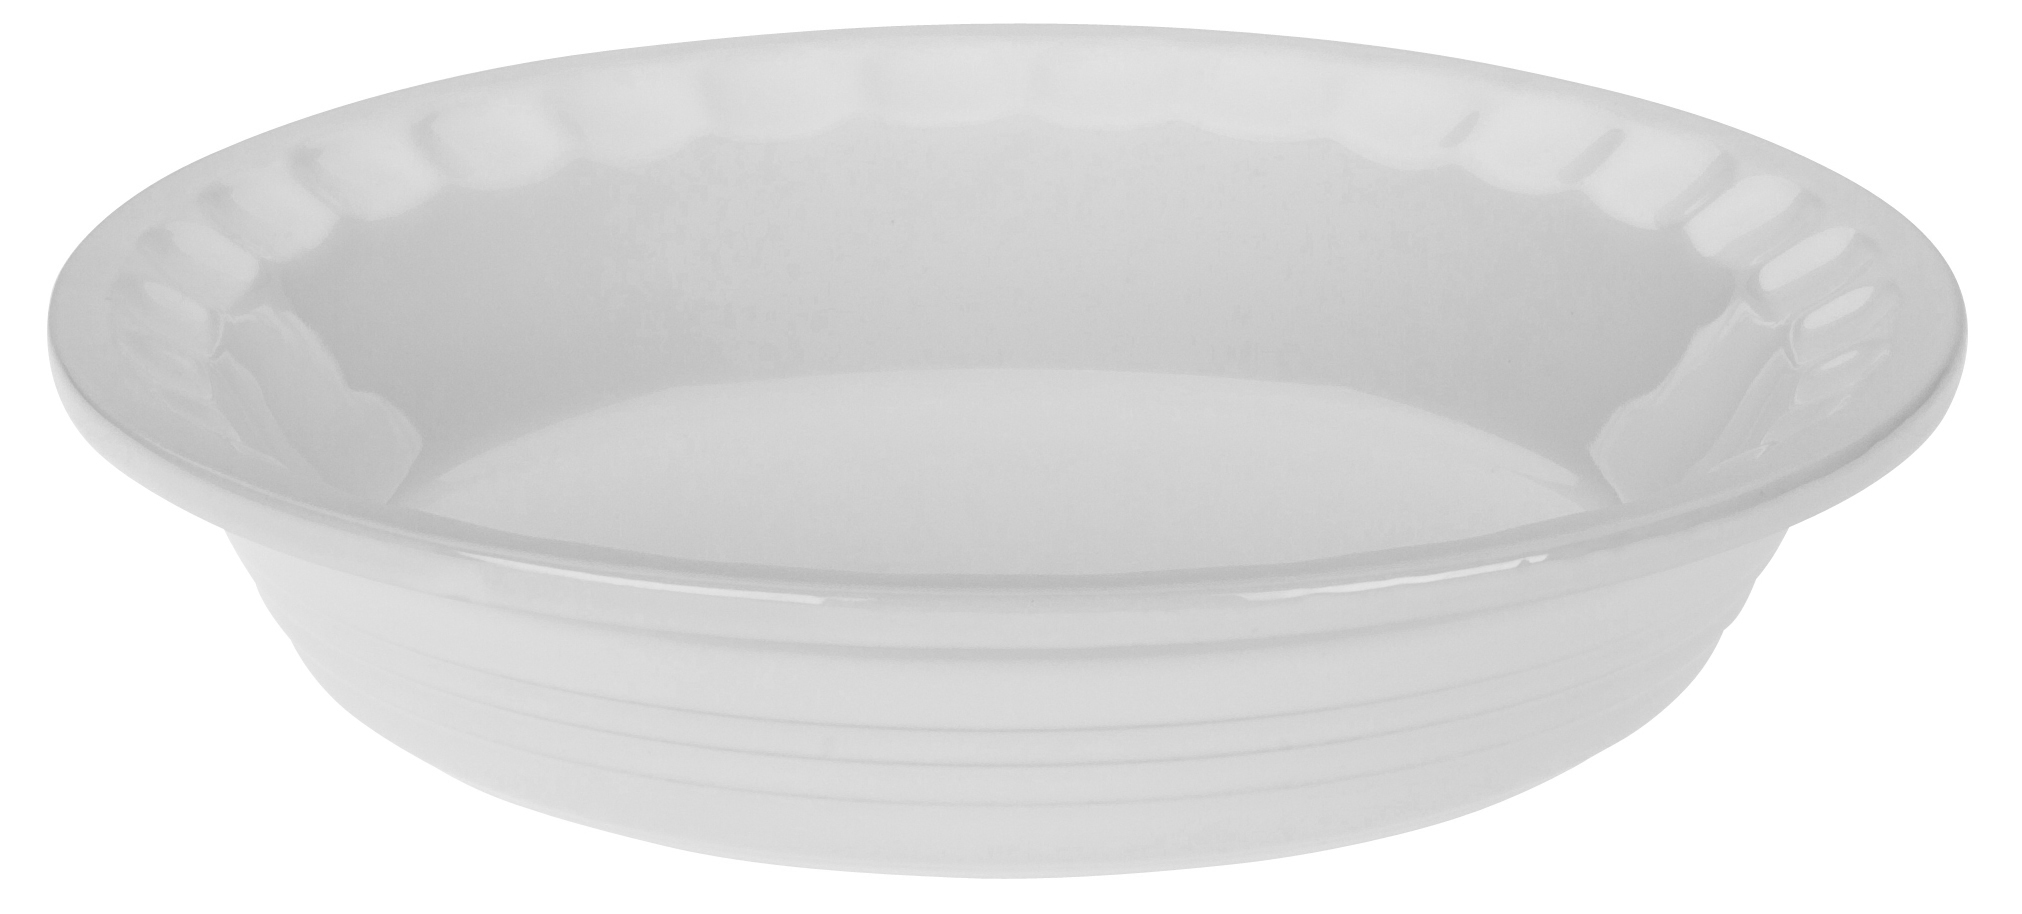 Le Creuset Heritage White Stoneware Pie Pan, 9 Inch